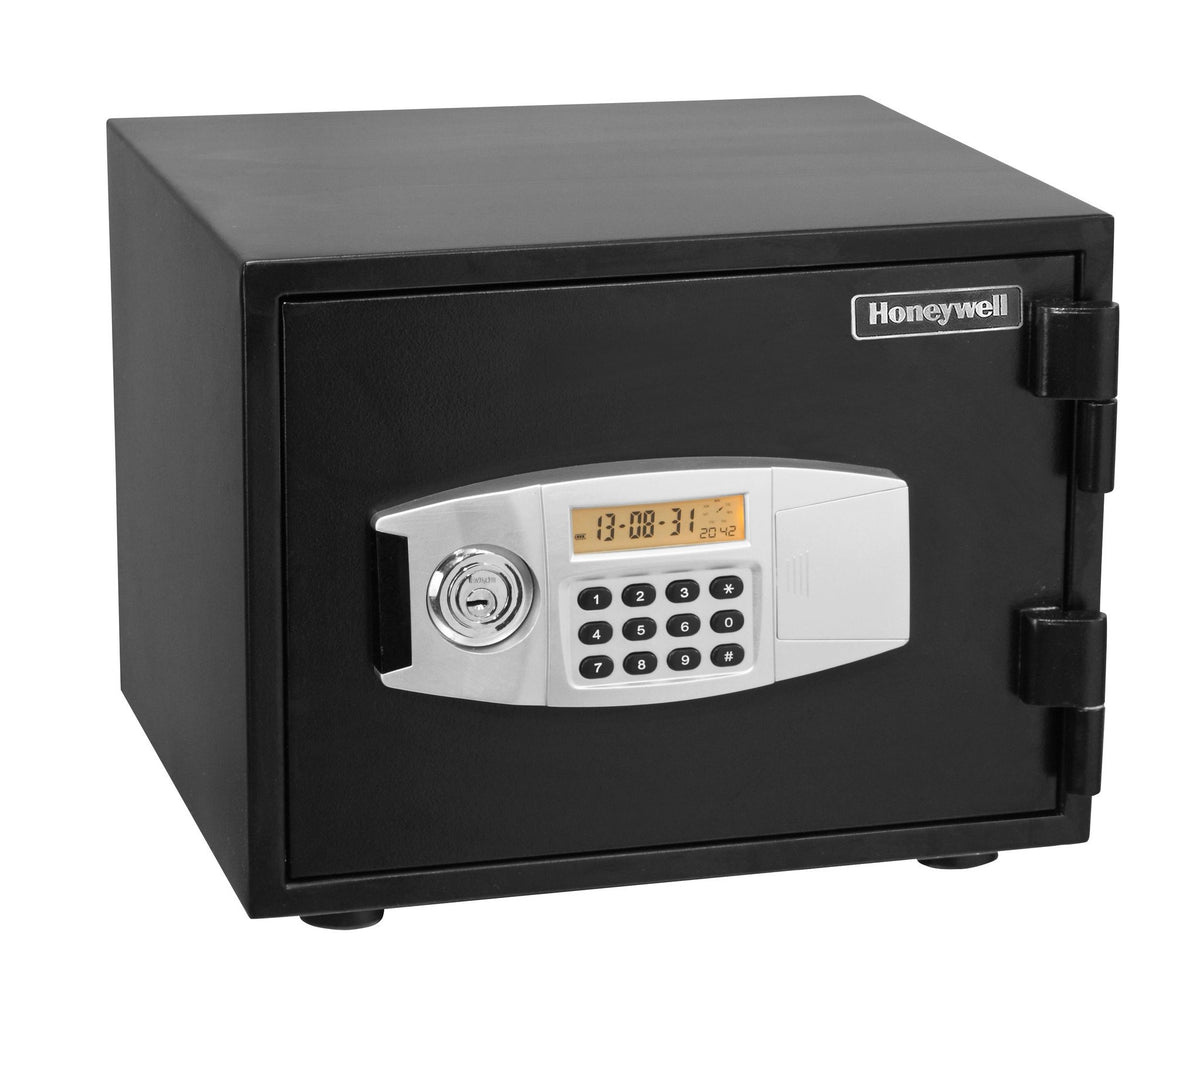 Honeywell 2111 Water Resistant Steel Fire & Security Safe